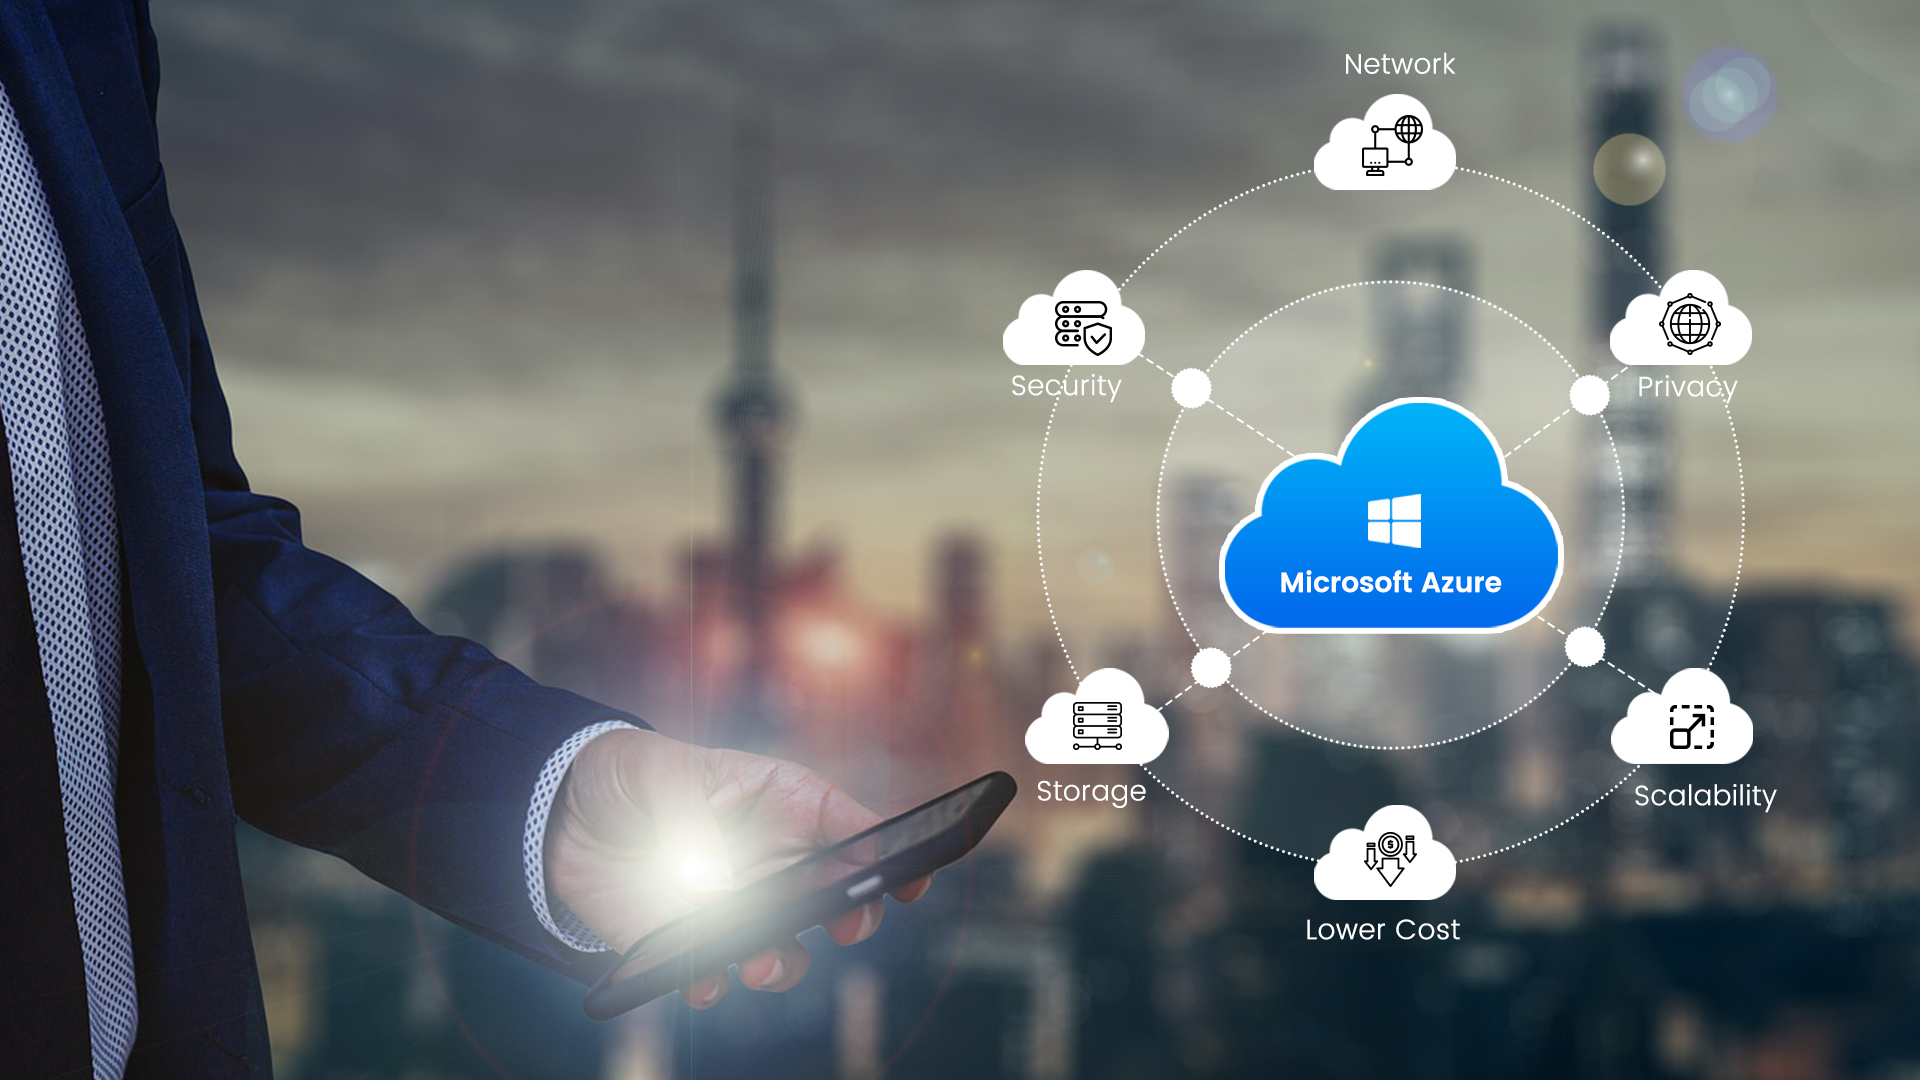 Azure-infrastructure-as-a-Service-(IaaS)